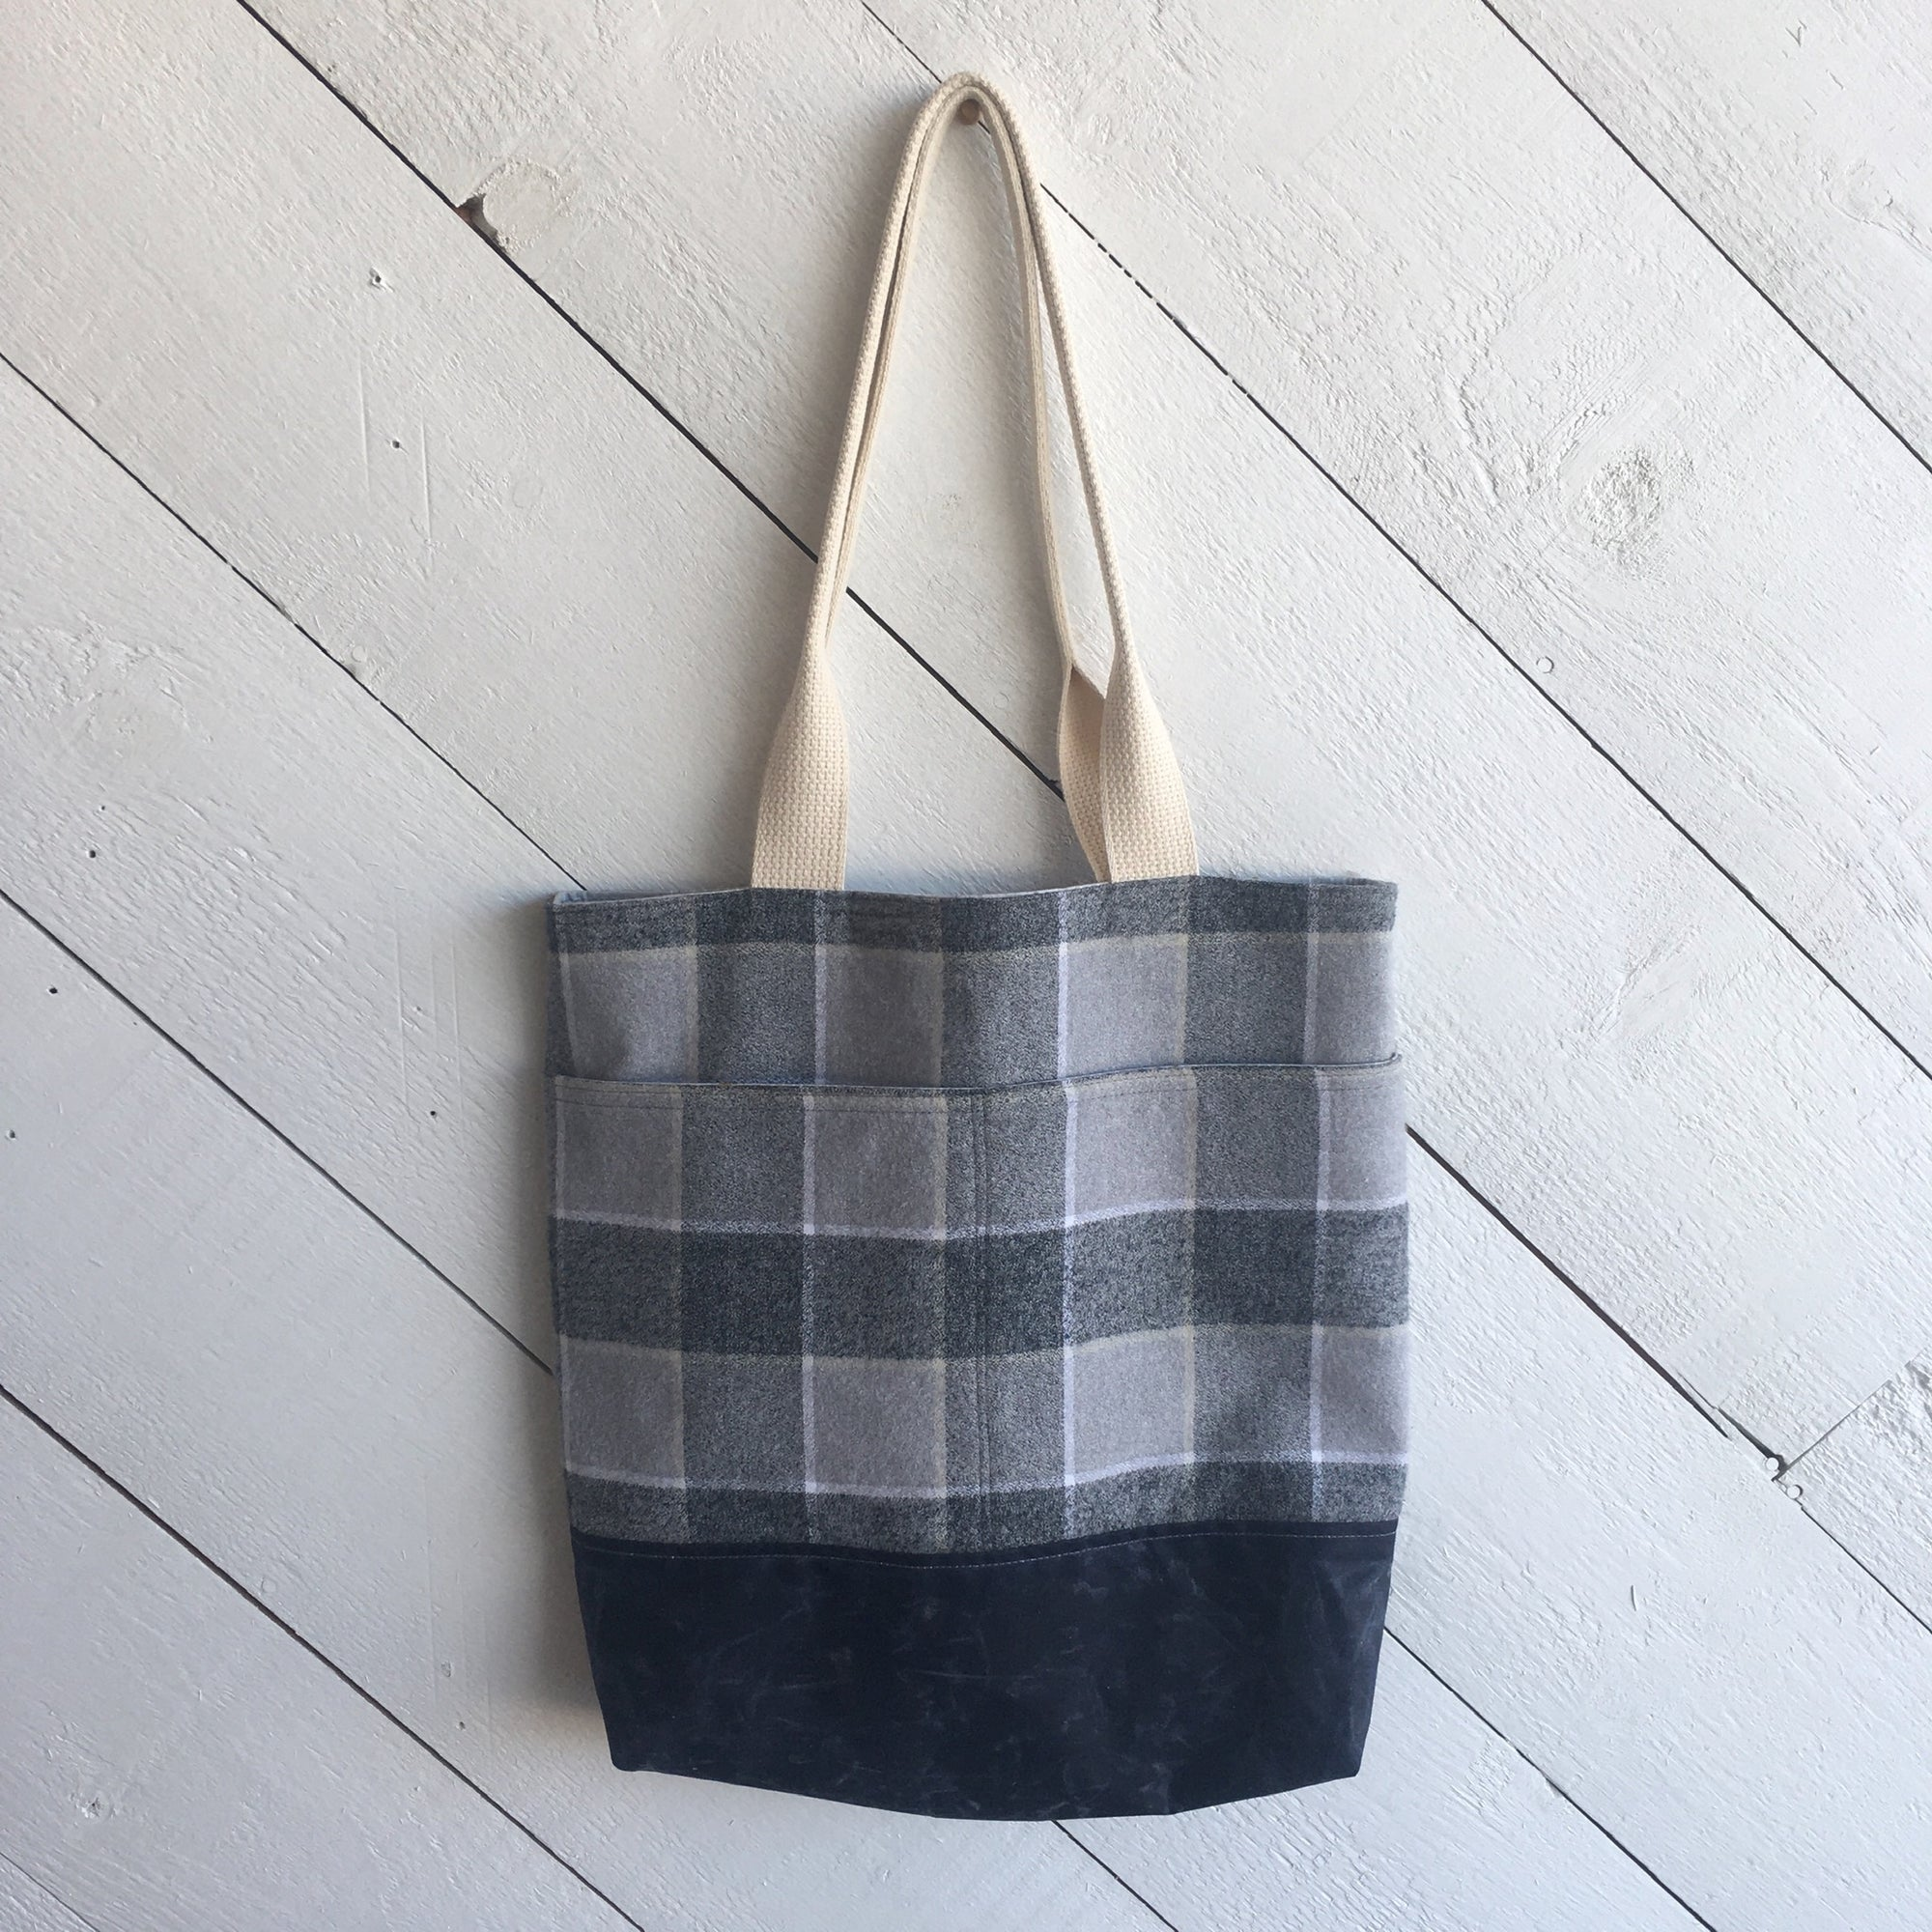 Sewing 106: Wool + Wax Tote 04/11